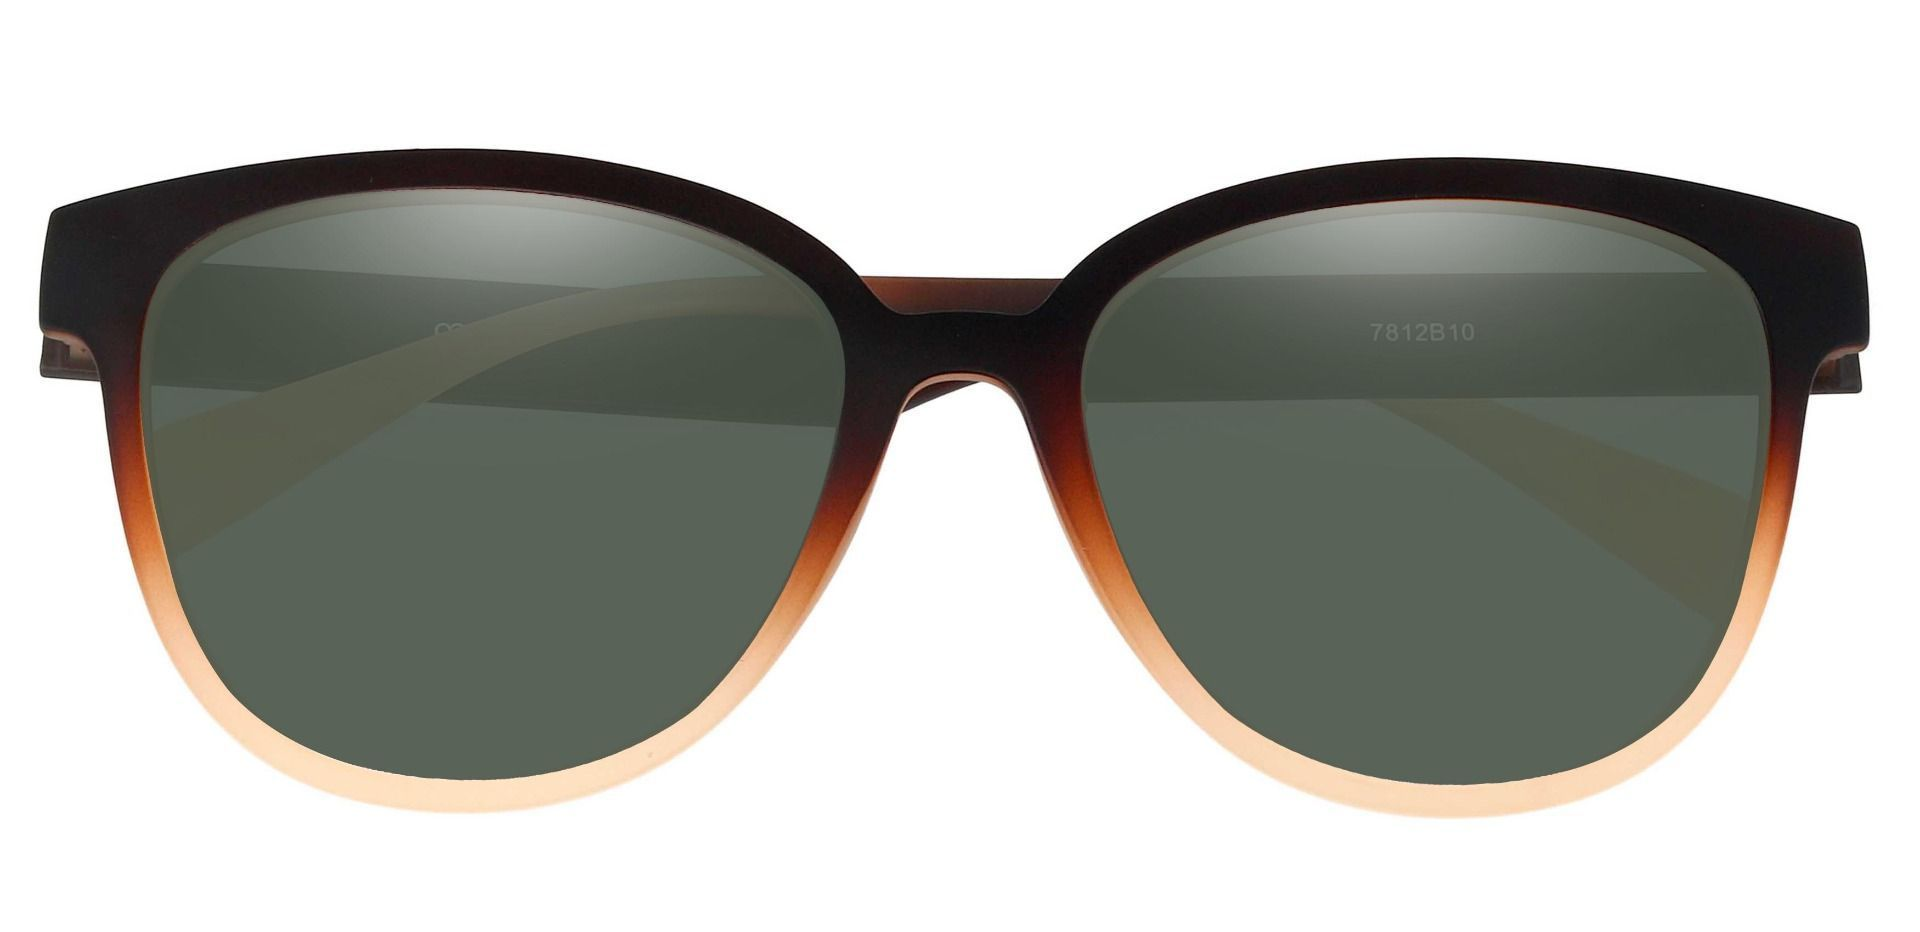 Newport Oval Reading Sunglasses - Brown Frame With Green Lenses